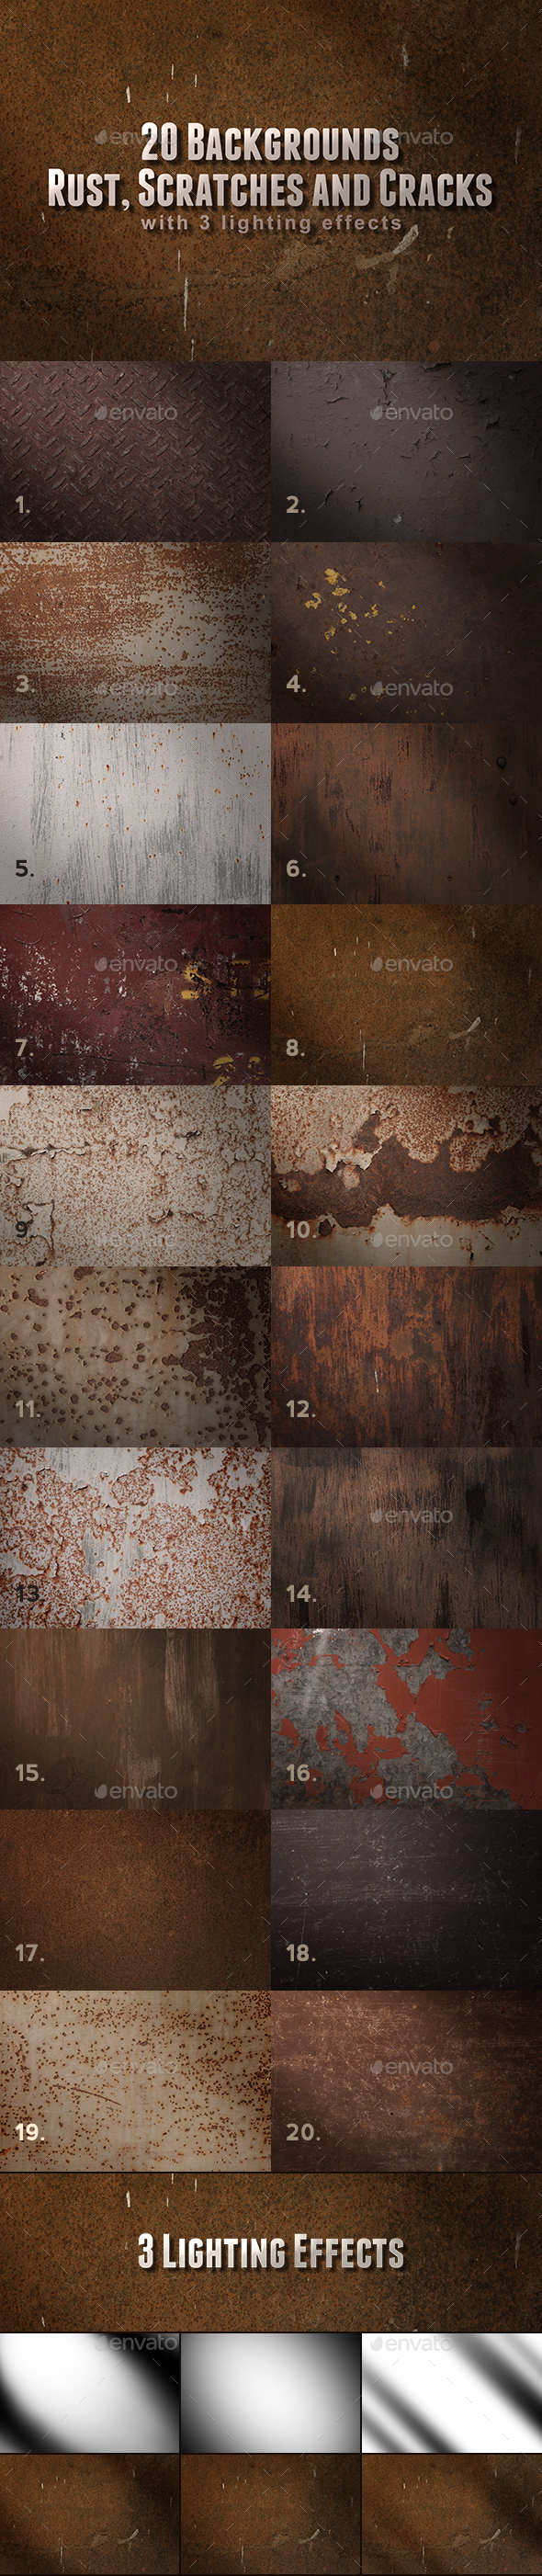 Metal Rust, Scratches and Cracks Backgrounds - Metal Textures